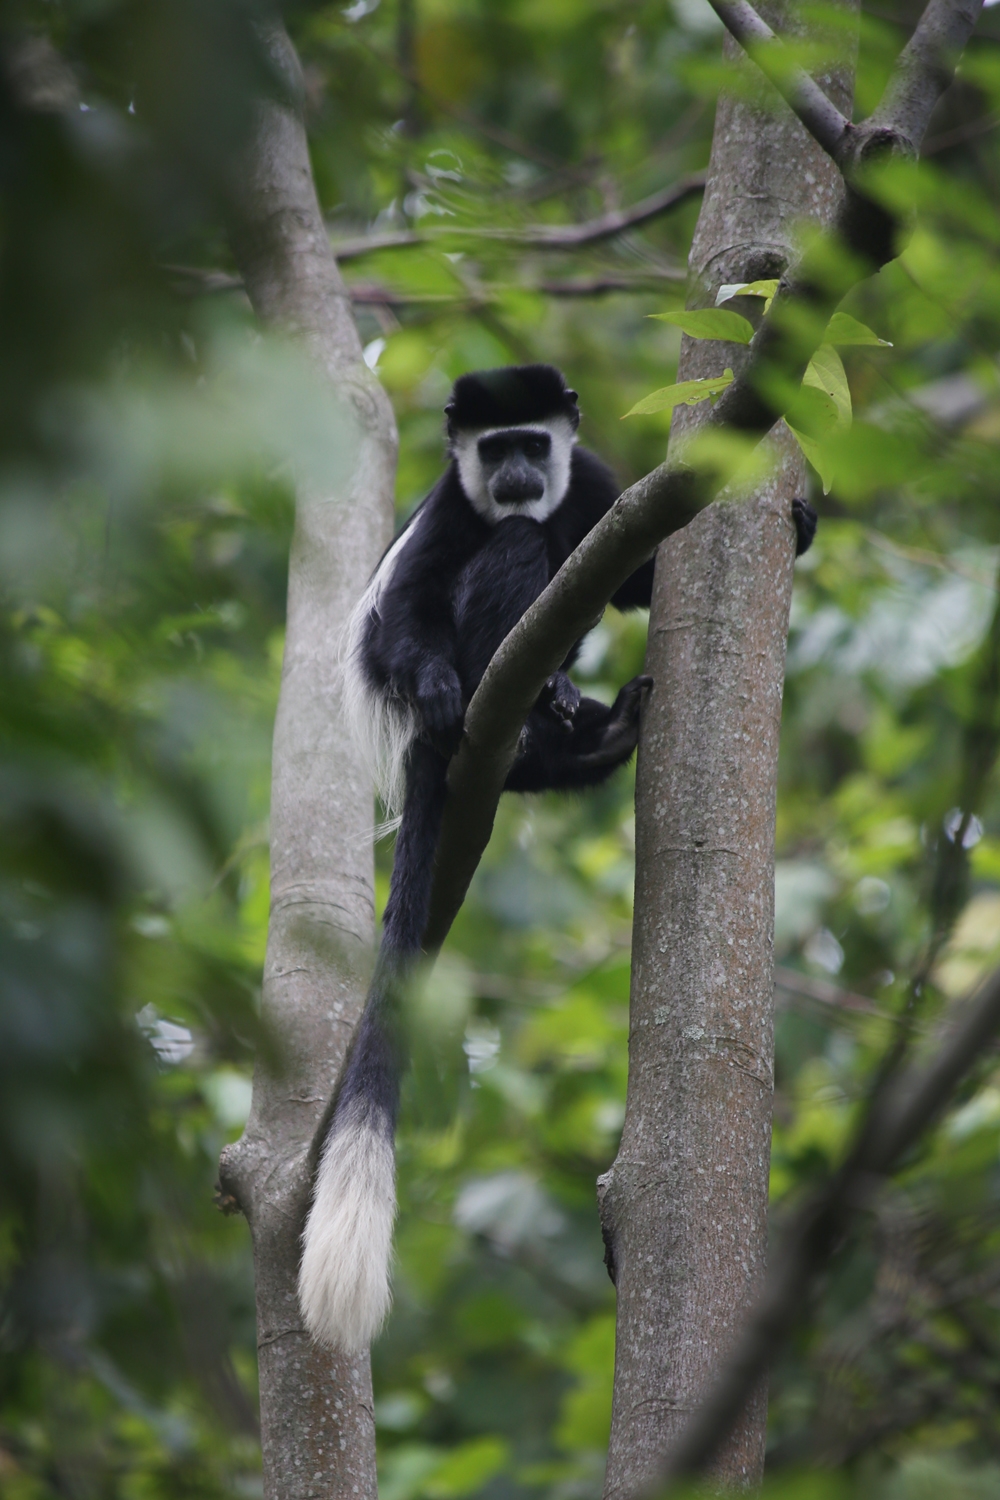 Colobus monkey in the trees near our bungalow